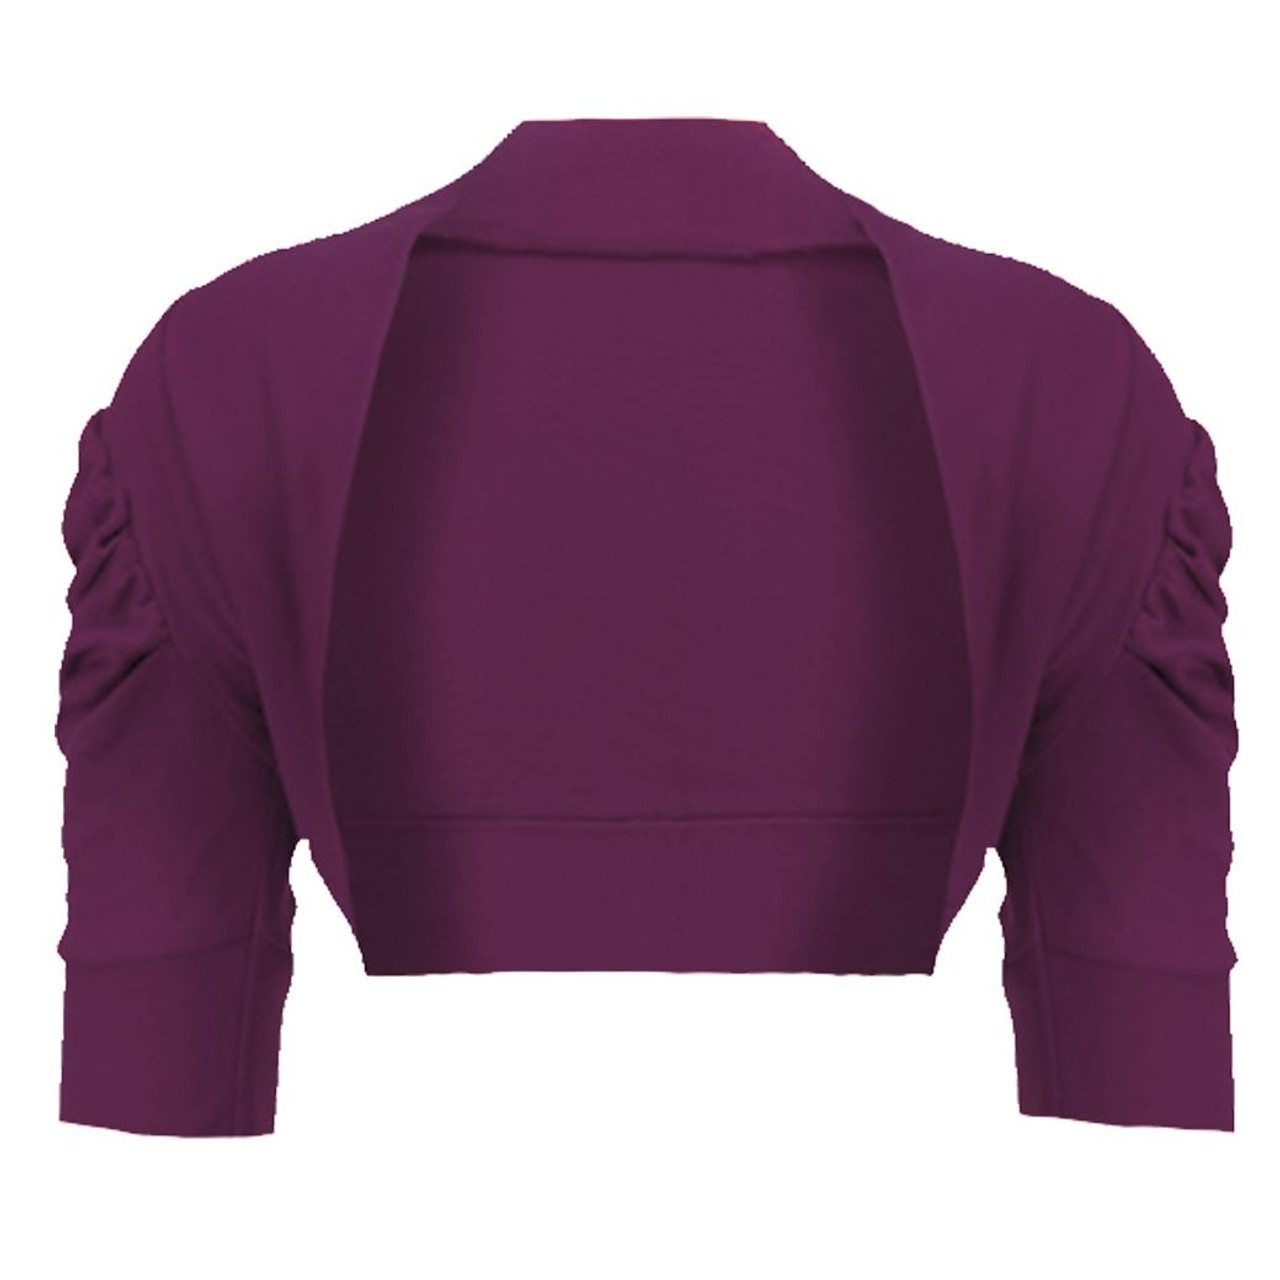 e9bc740674 Girls Bolero Shrug 2-14 Y Available in Various Colors.